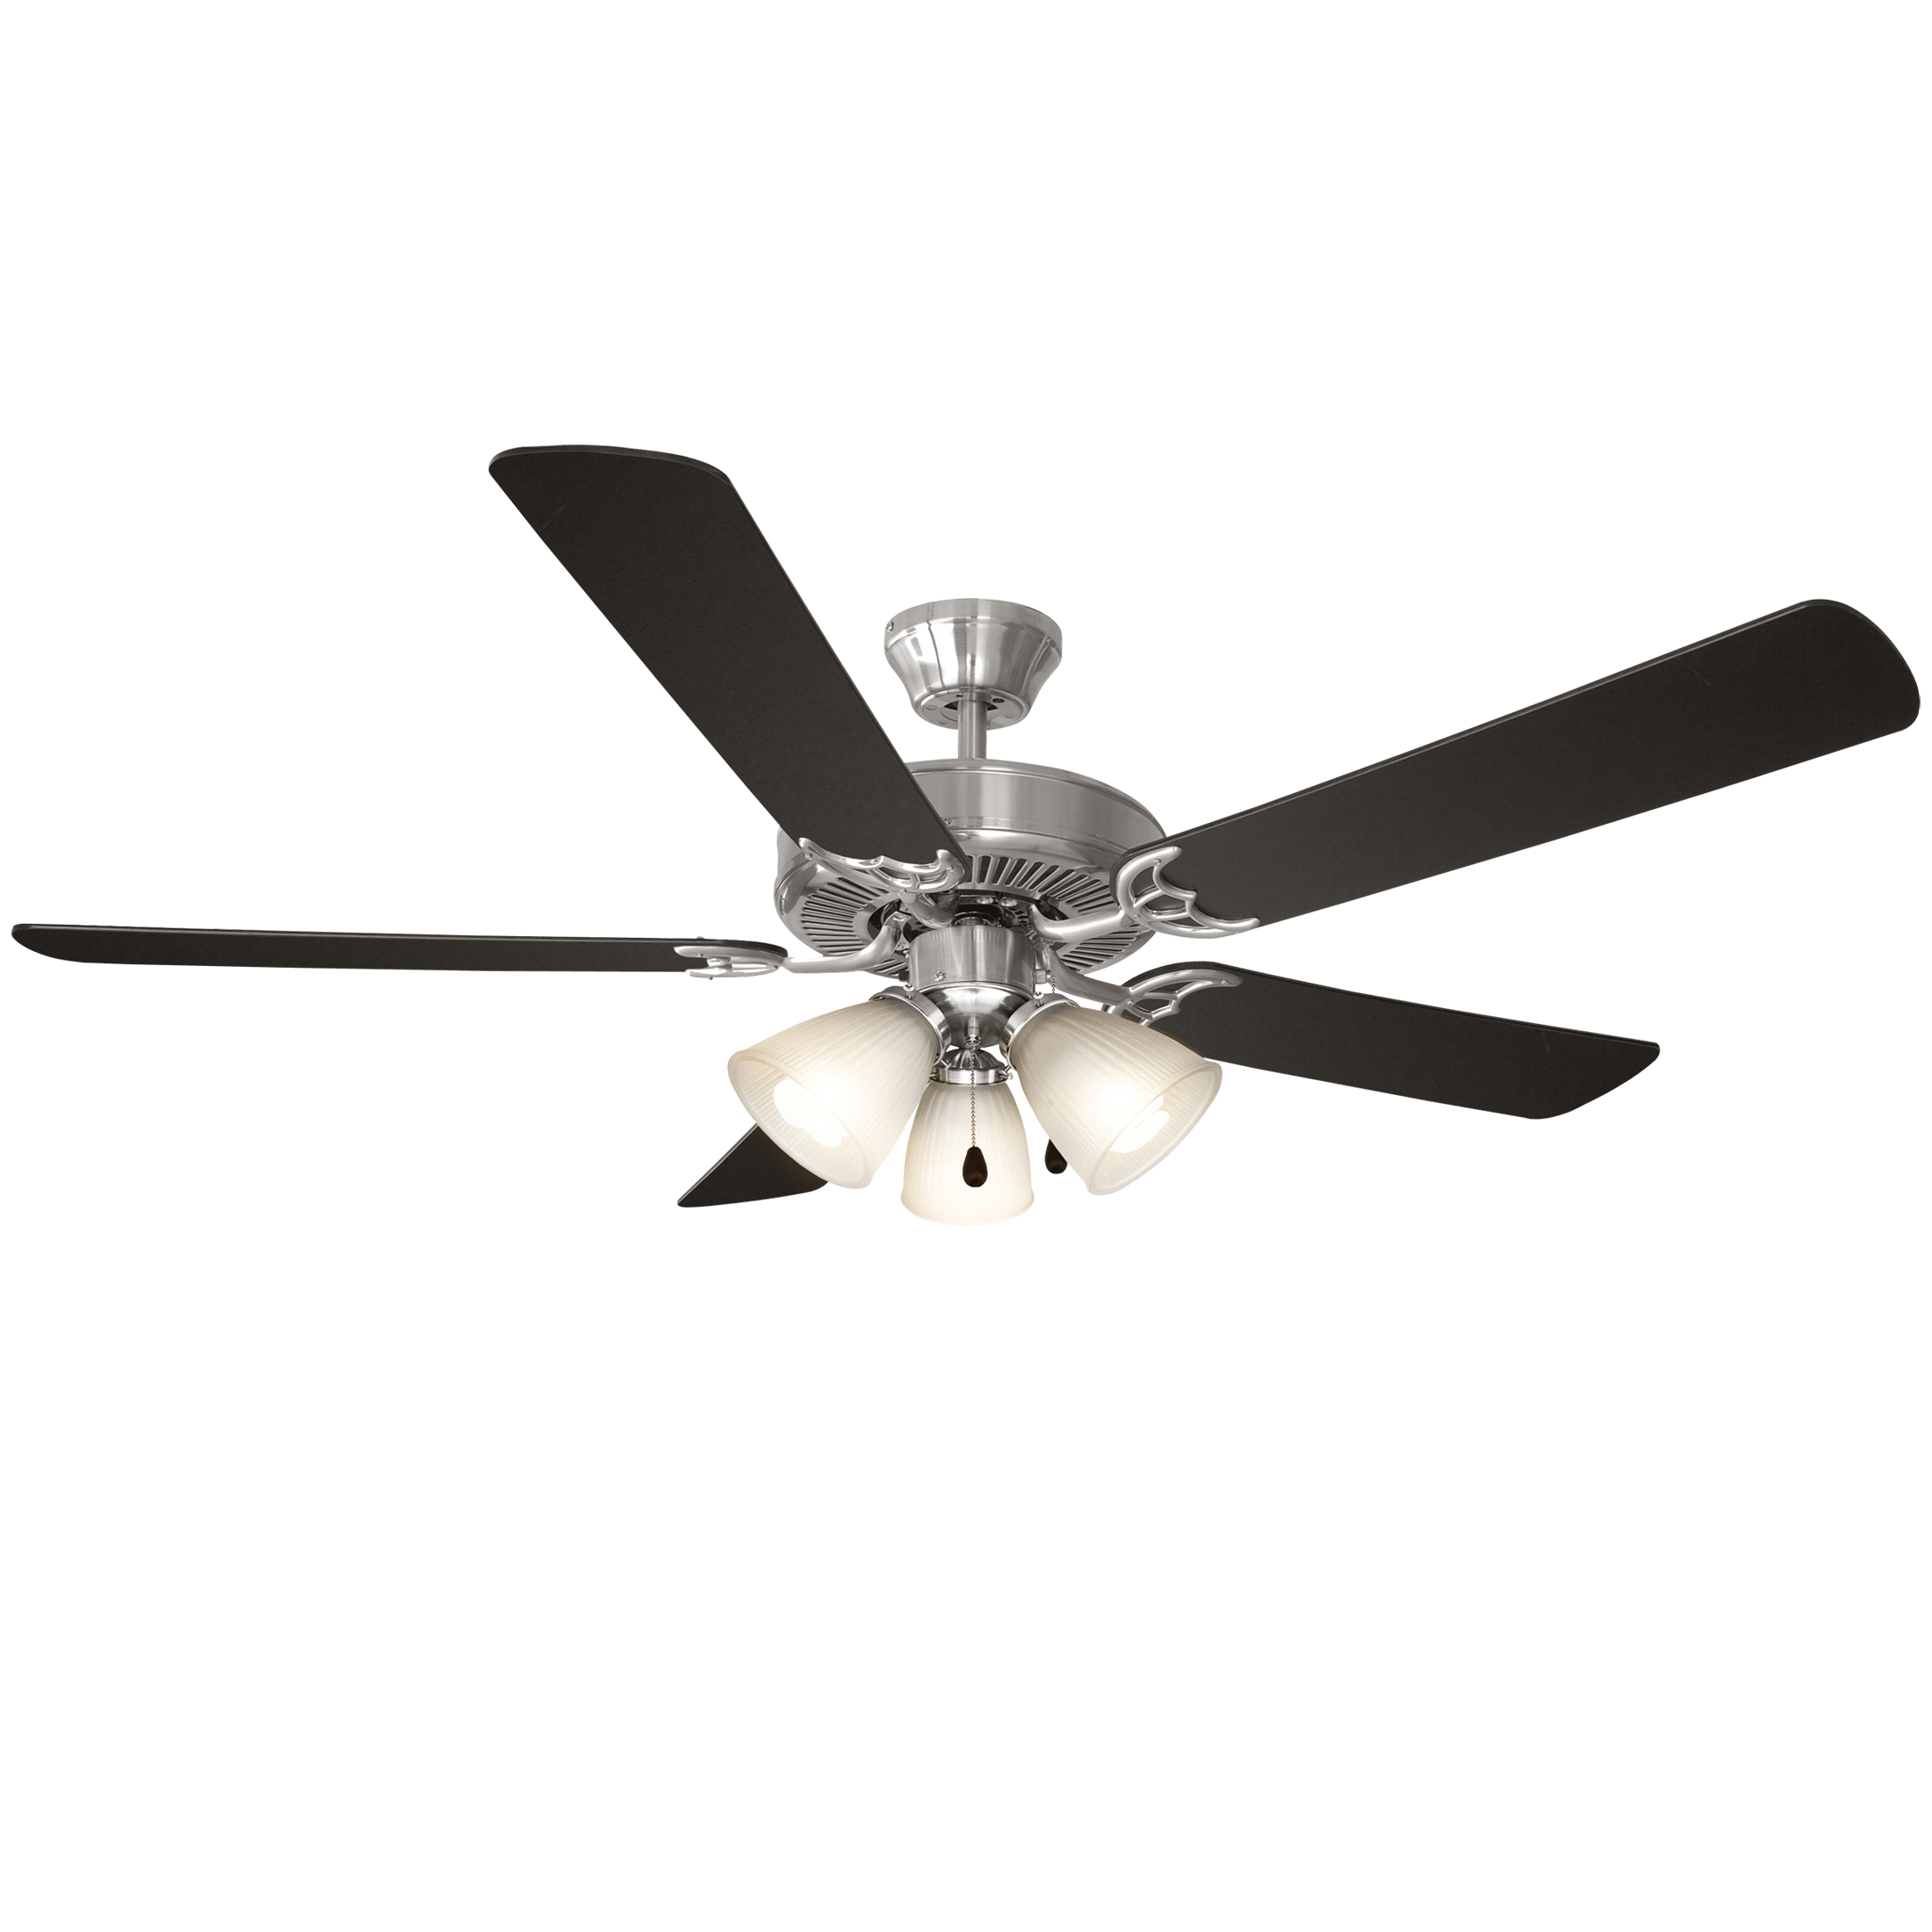 Millbridge Ceiling Fan Energy Efficient 52